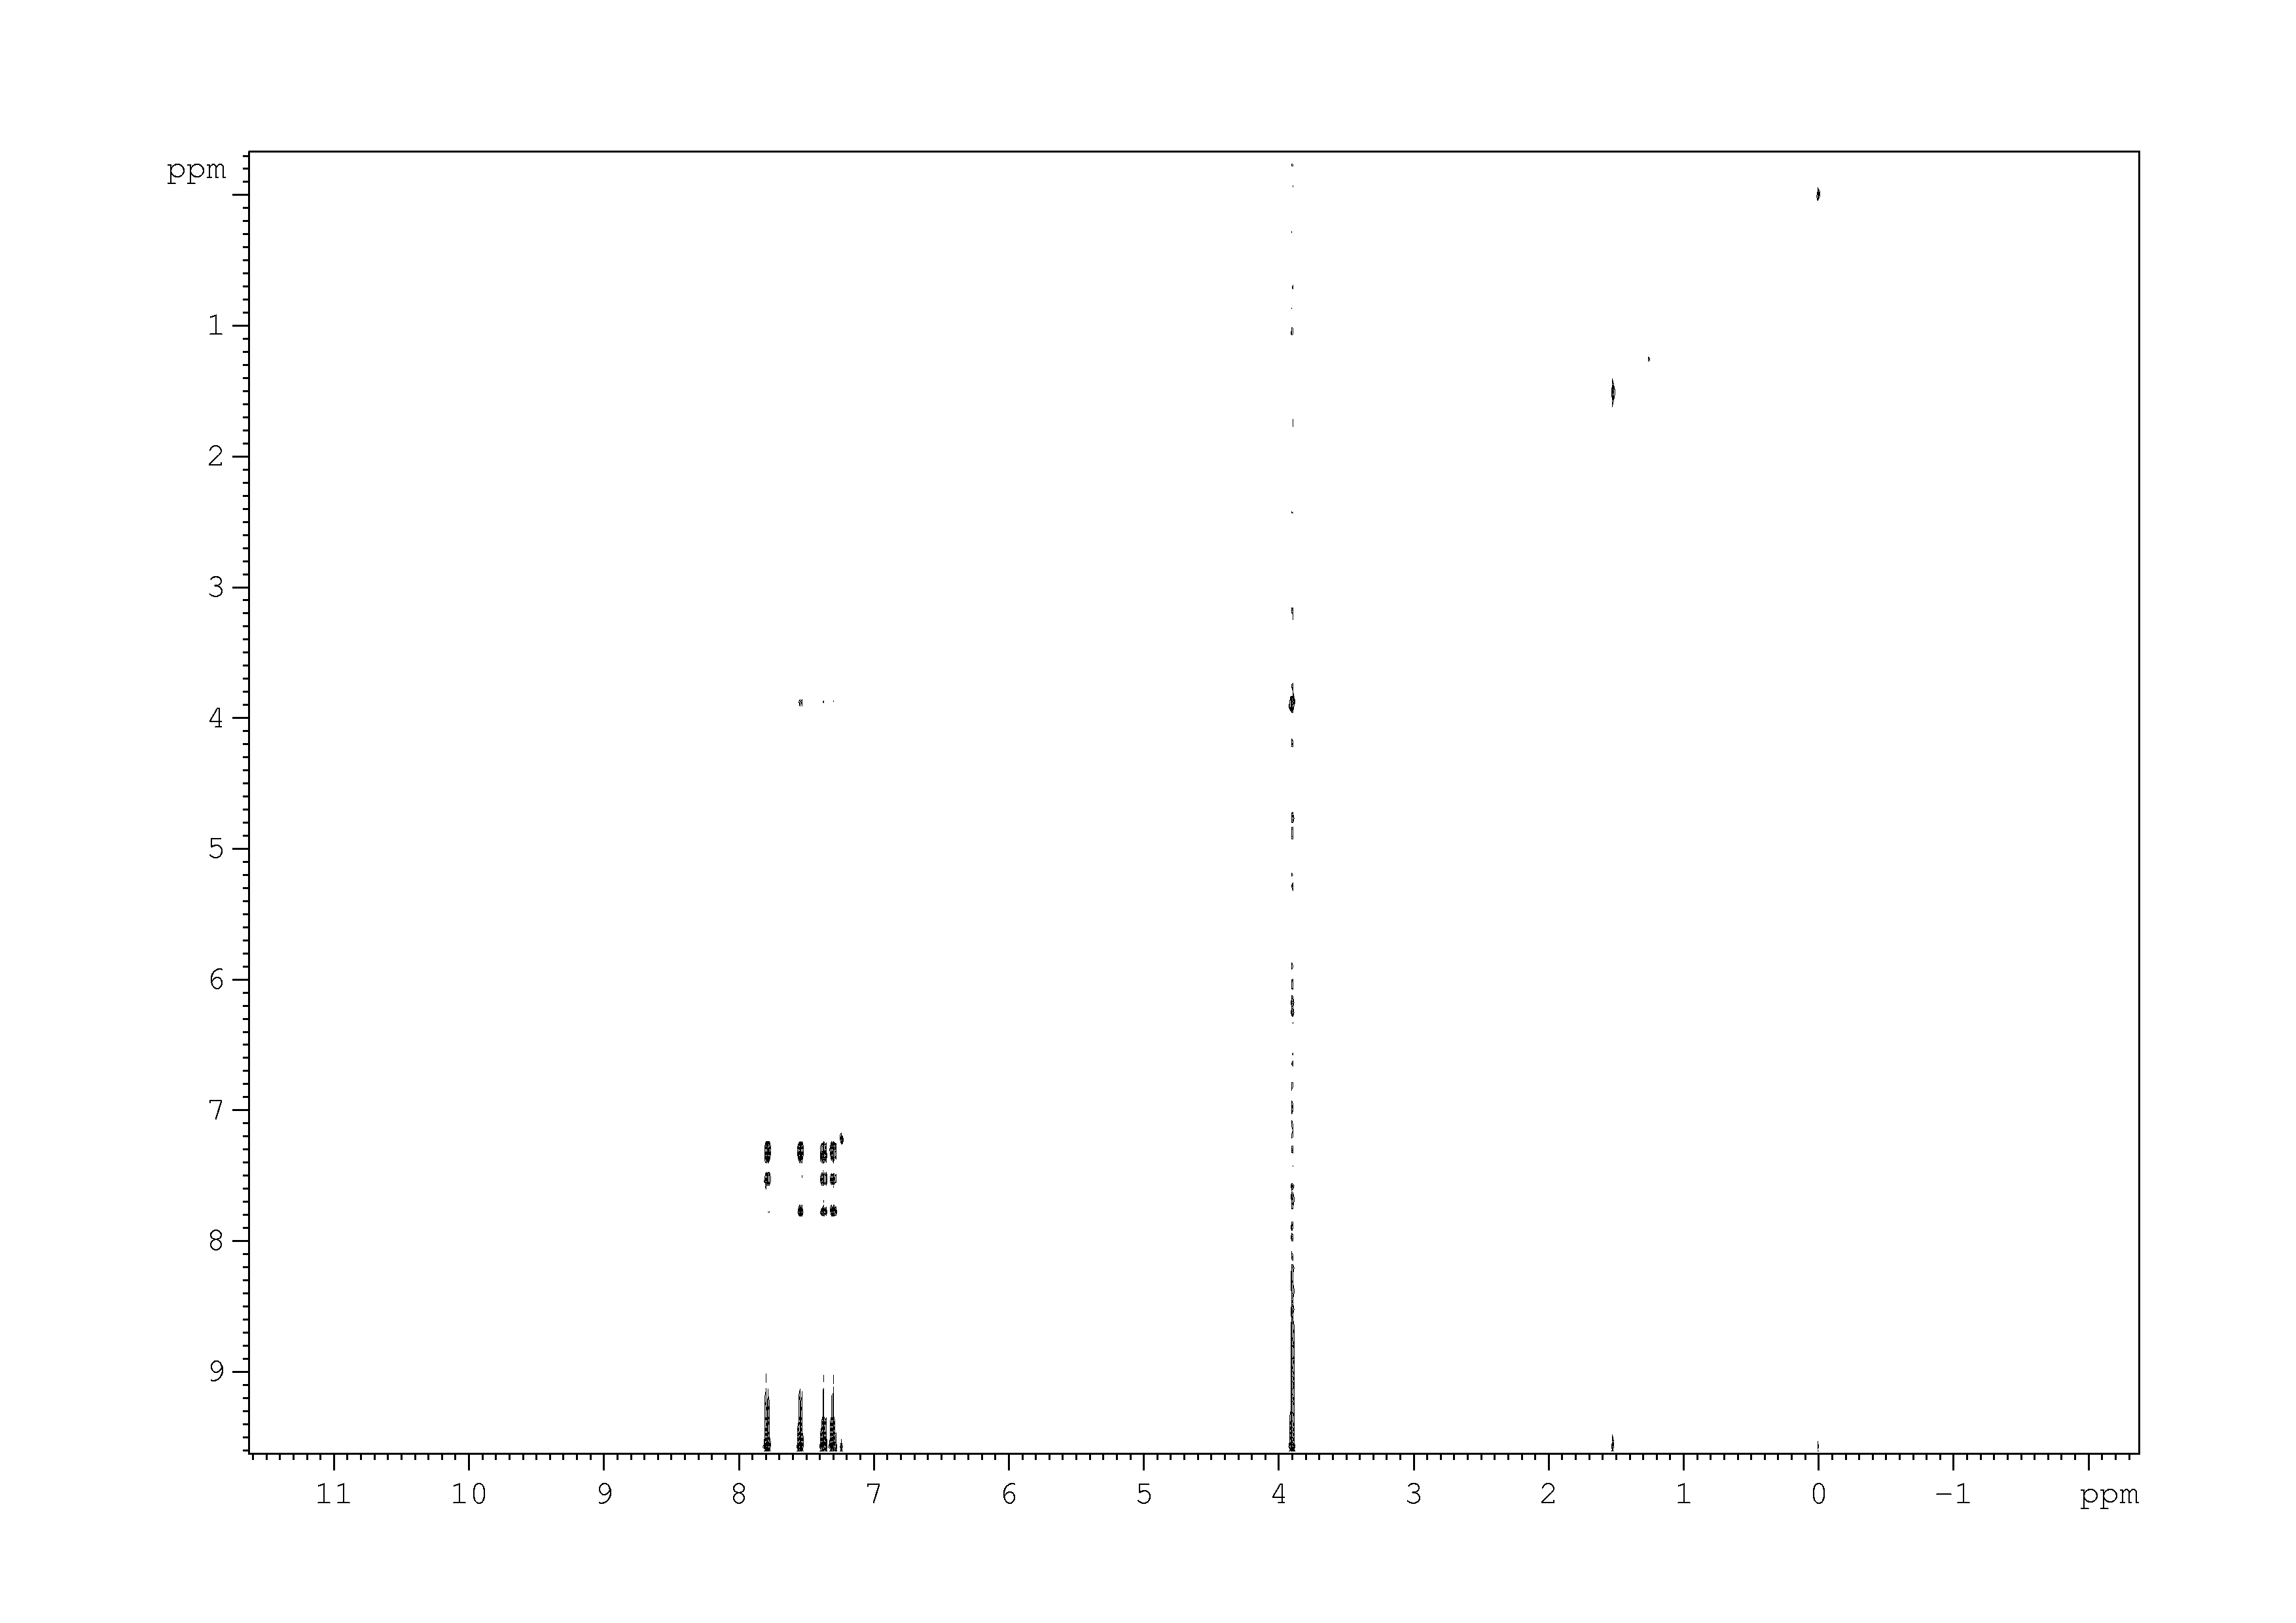 2D [1H,1H]-TOCSY, n/a spectrum for fluorene